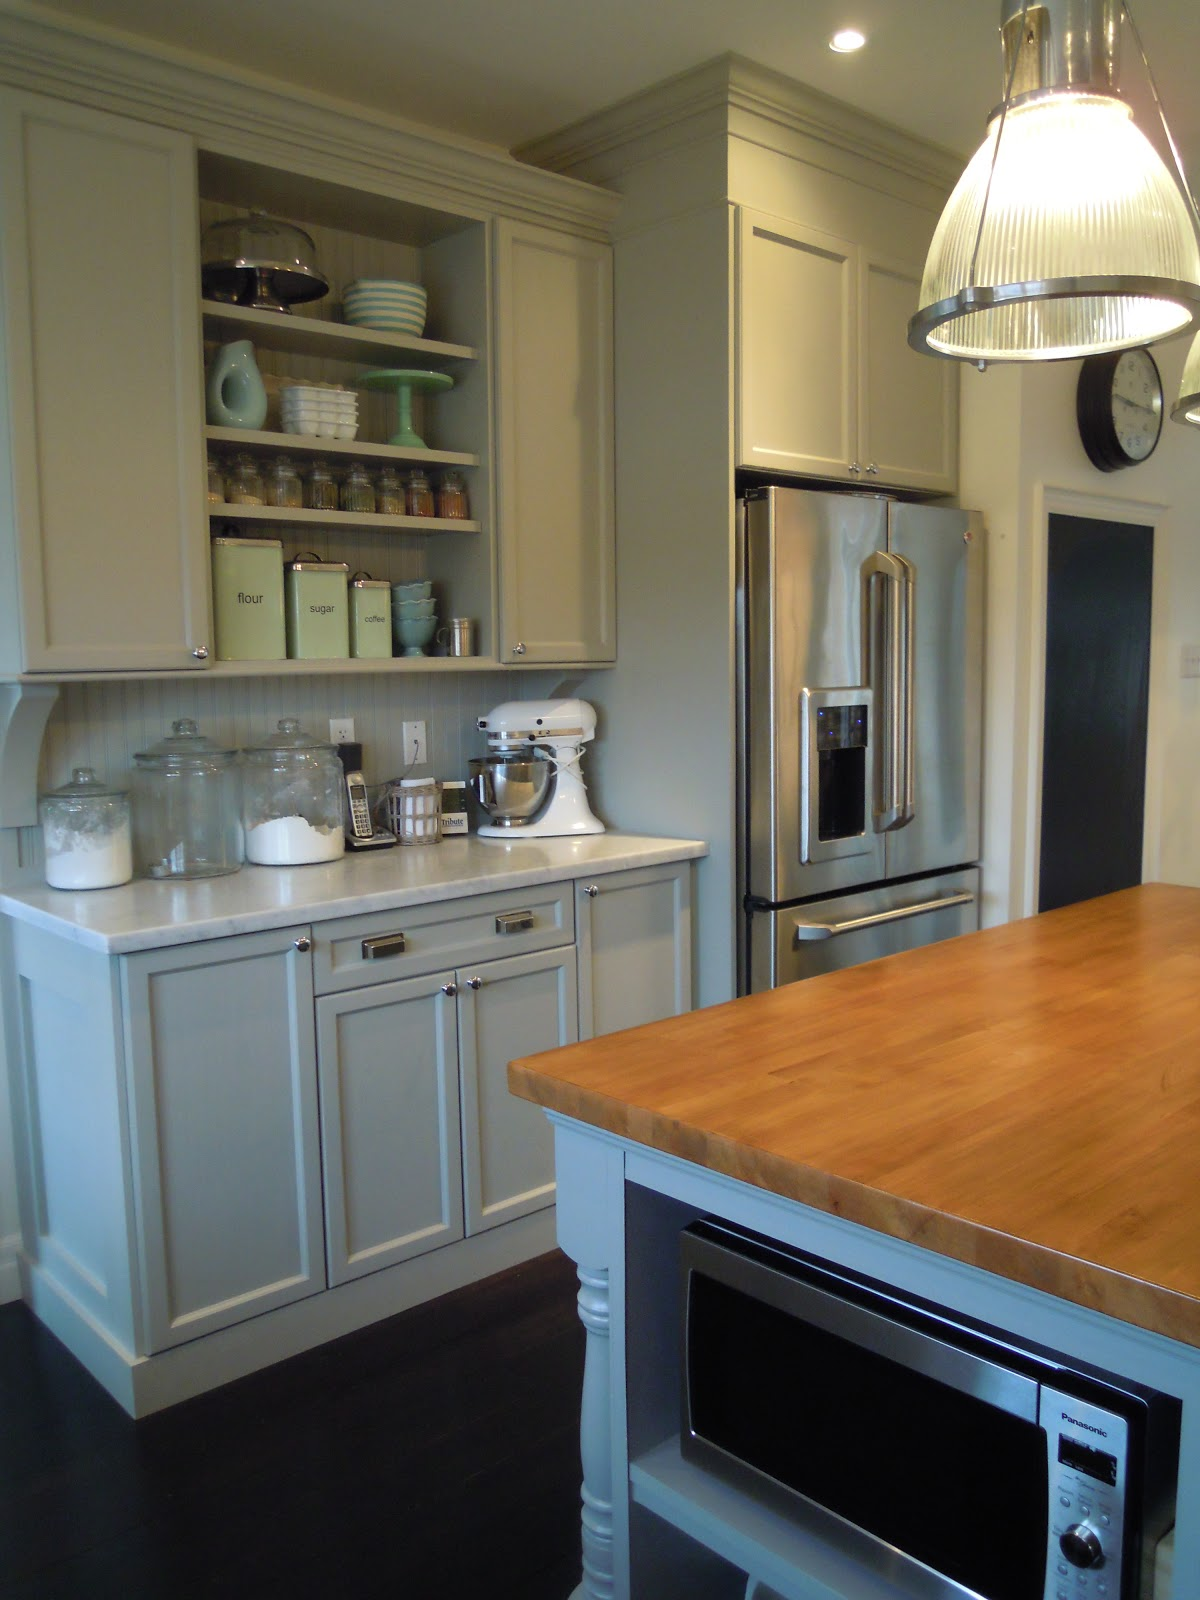 White wood finally our completed kitchen from builder for Basic kitchen cupboards